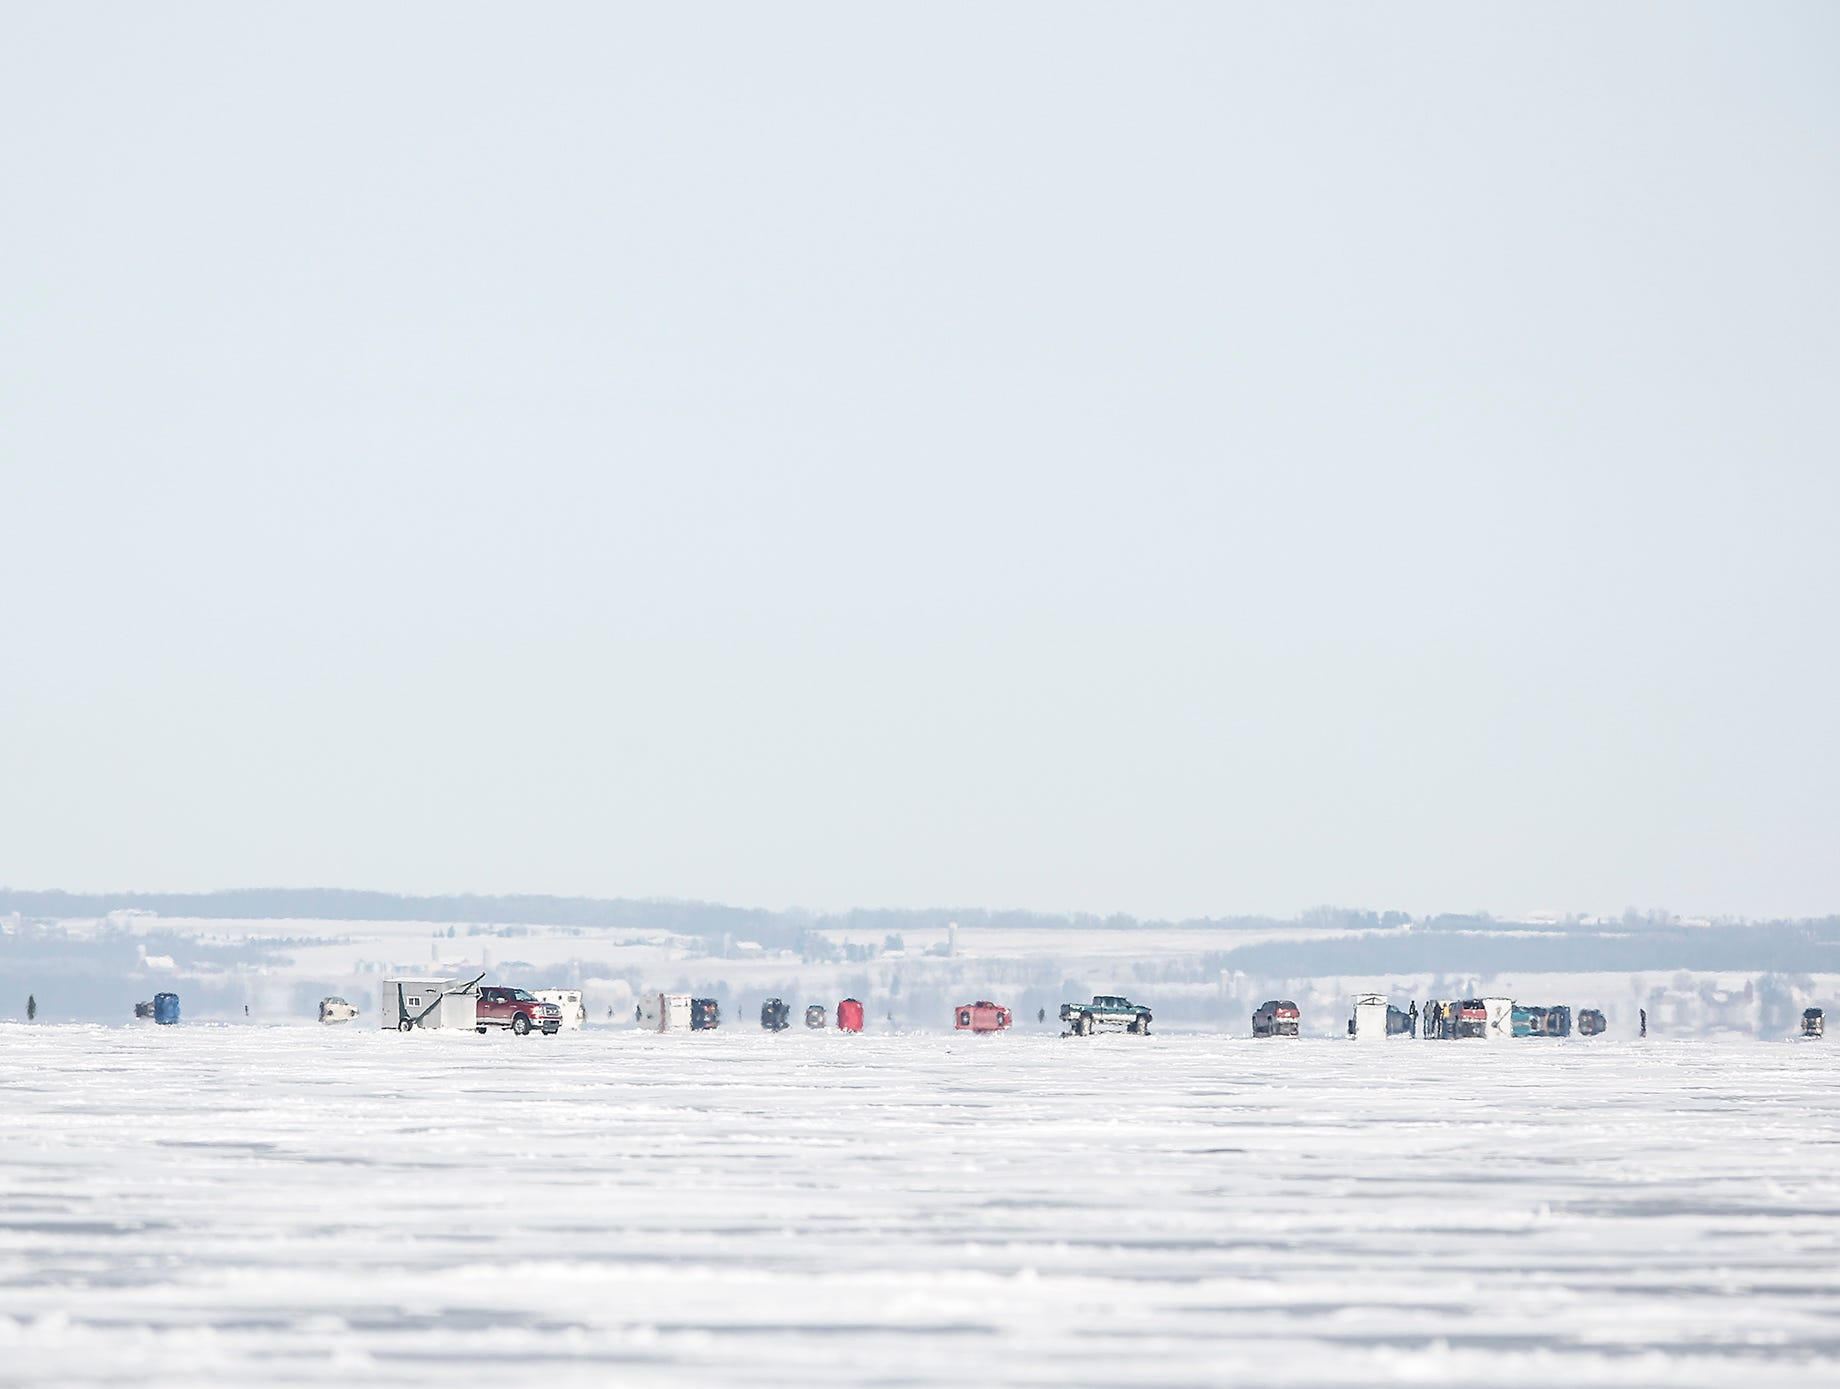 A scattering of fish shanties dots the horizon Saturday, February 9, 2019 on Lake Winnebago  between Fond du Lac and Oshkosh. Sturgeon spearing season runs from February 9, 2019 through February 24, 2019 on Lake Winnebago or until any